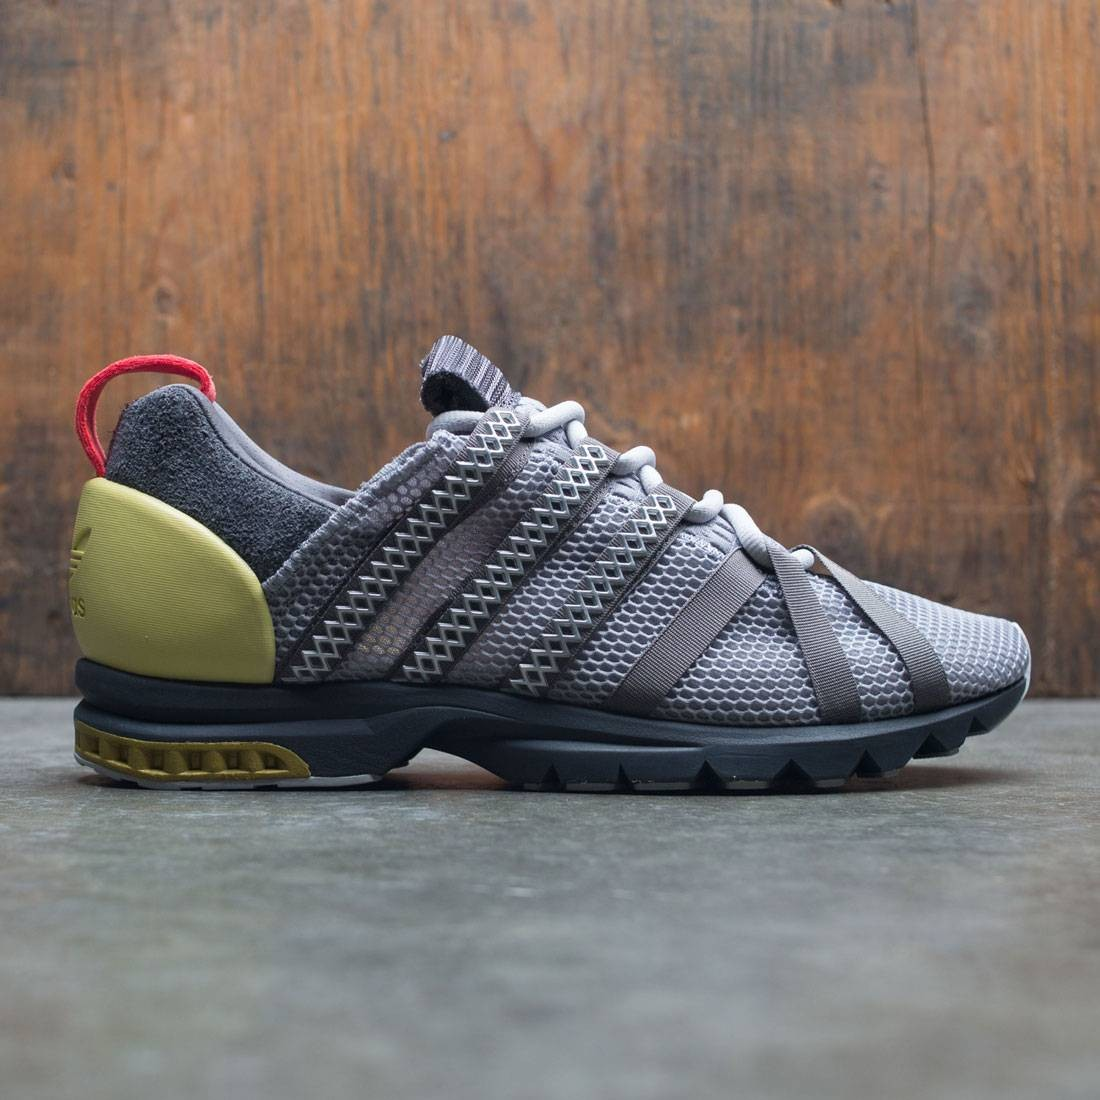 【海外限定】アディダス テック 銀色 シルバー 黒 ブラック スニーカー 靴 【 ADIDAS SILVER BLACK CONSORTIUM MEN ADISTAR COMP A D WORKSHOP GRAY LIGHT ONIX TECH METALLIC WHITE 】